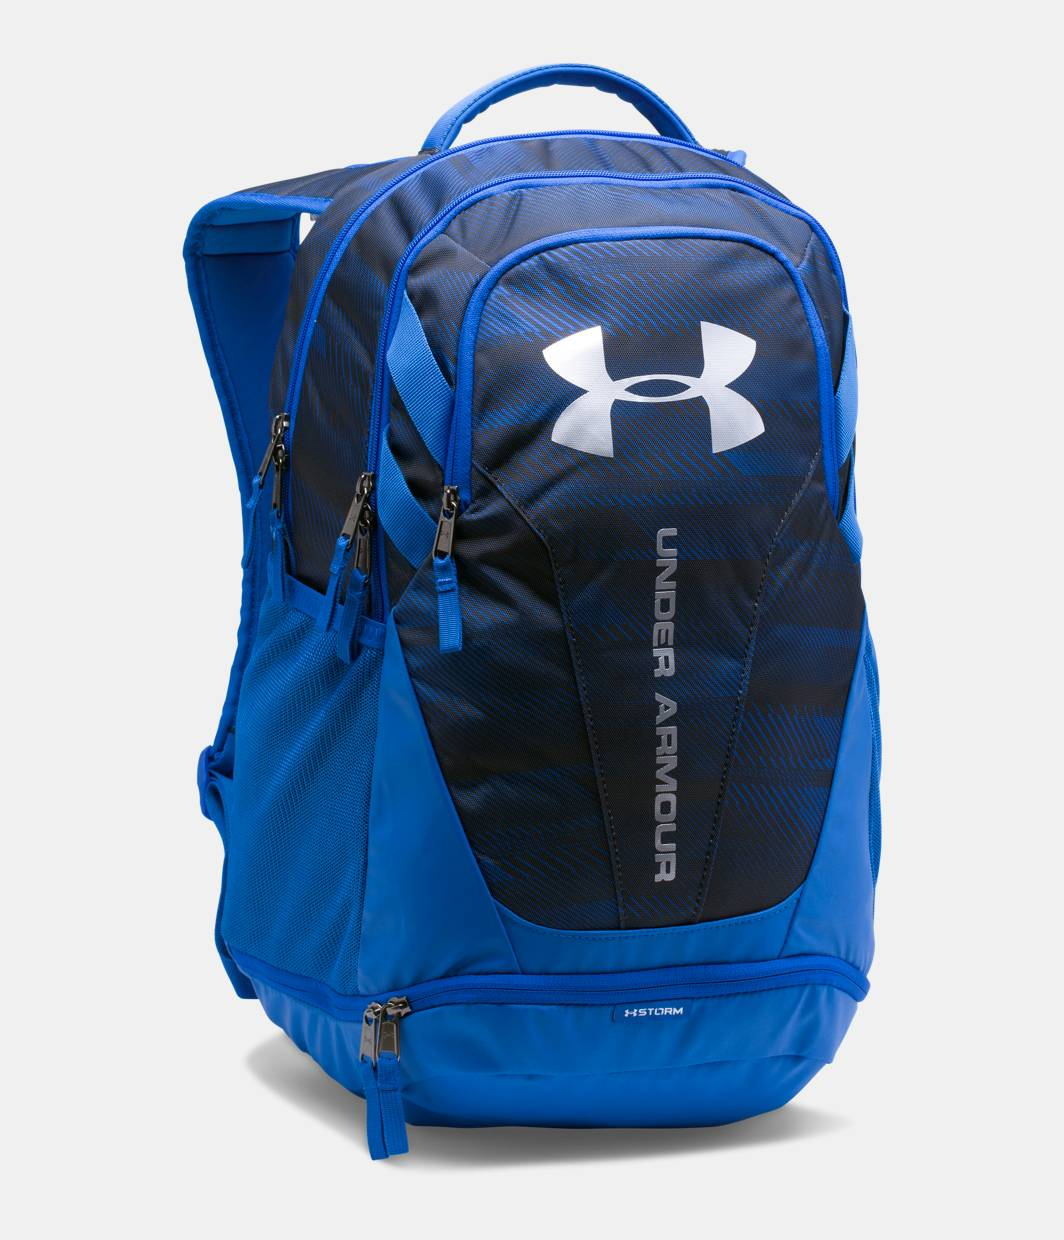 770f3bfb0e Under Armour Hustle 3.0 Backpack (various colors) - Slickdeals.net